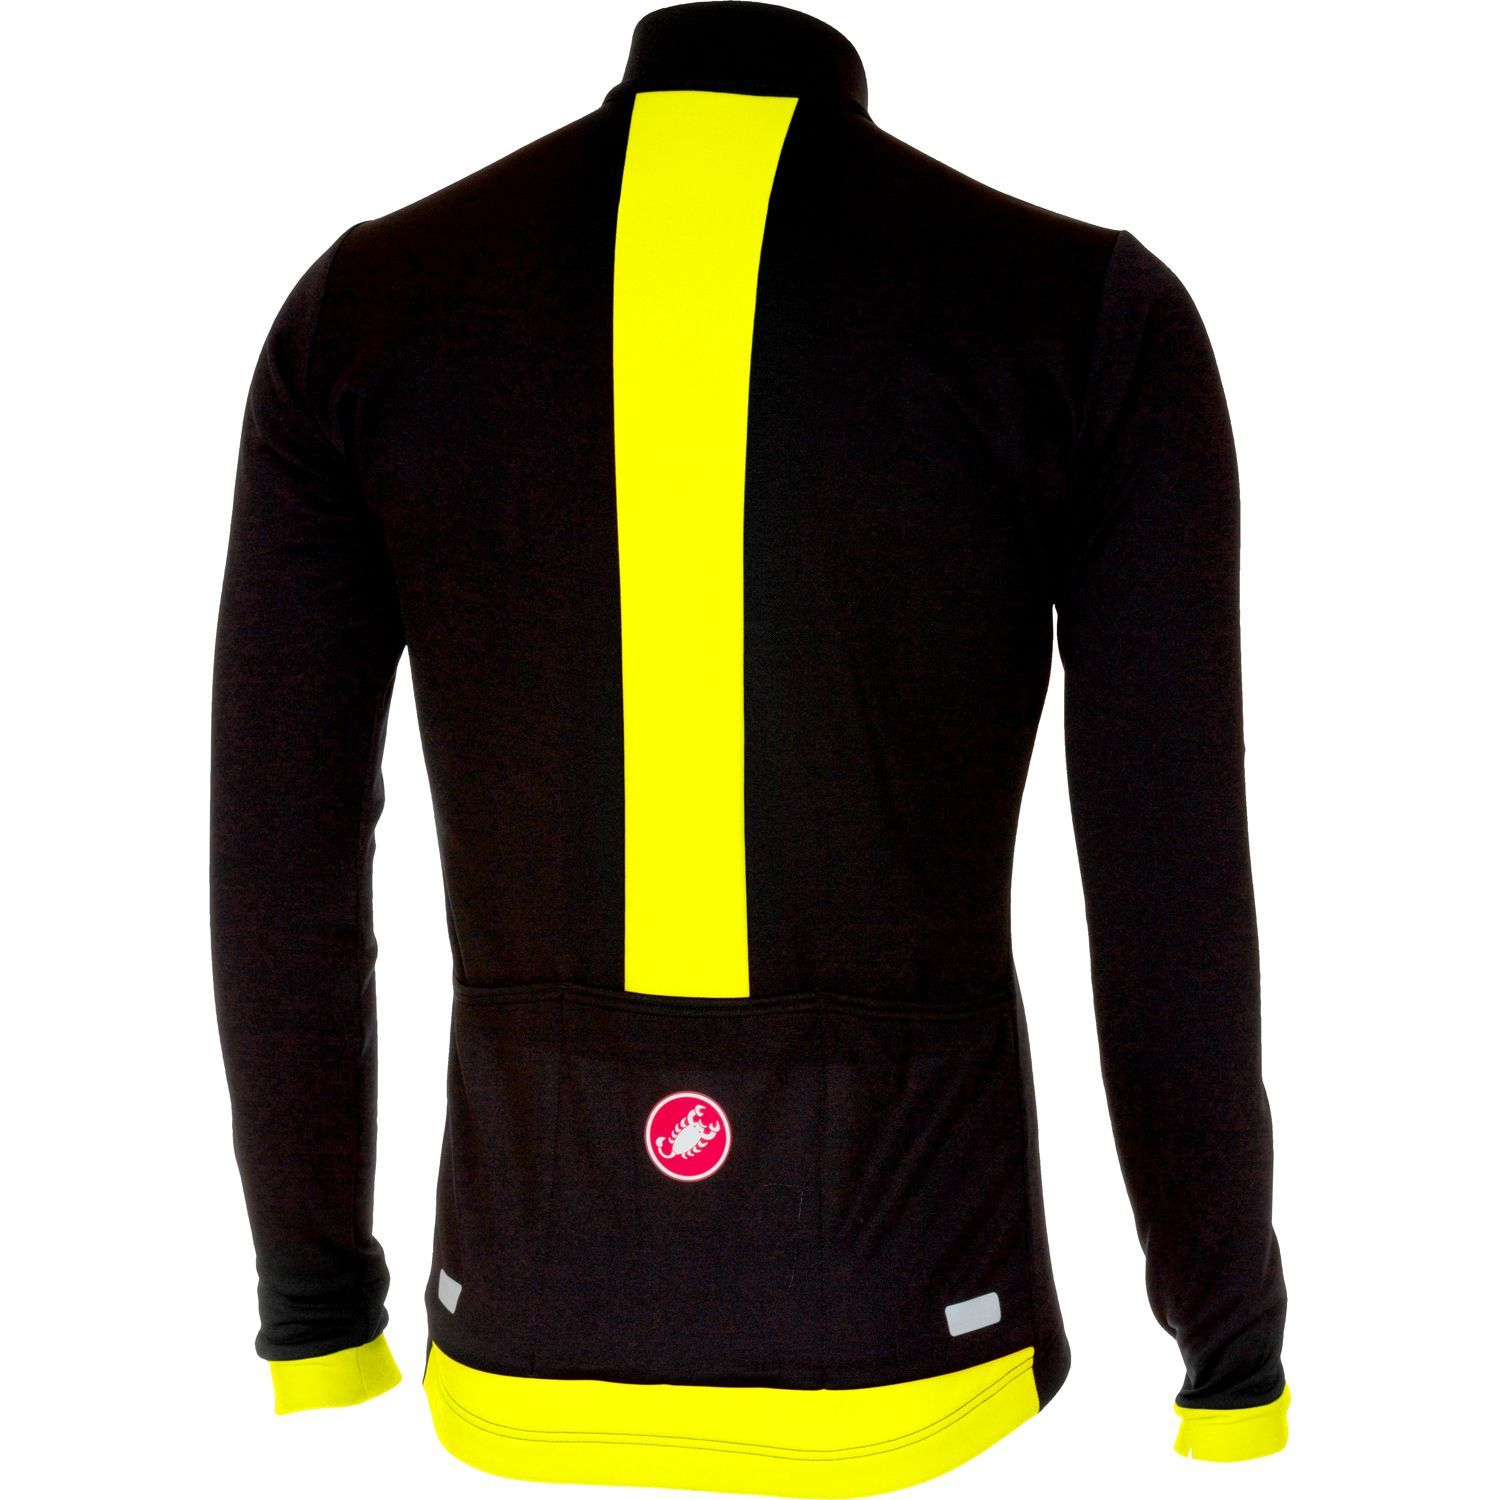 Previous. Castelli FONDO long sleeve cycling jersey black yellow fluo · Castelli  FONDO long sleeve cycling jersey ... 01429cd0f